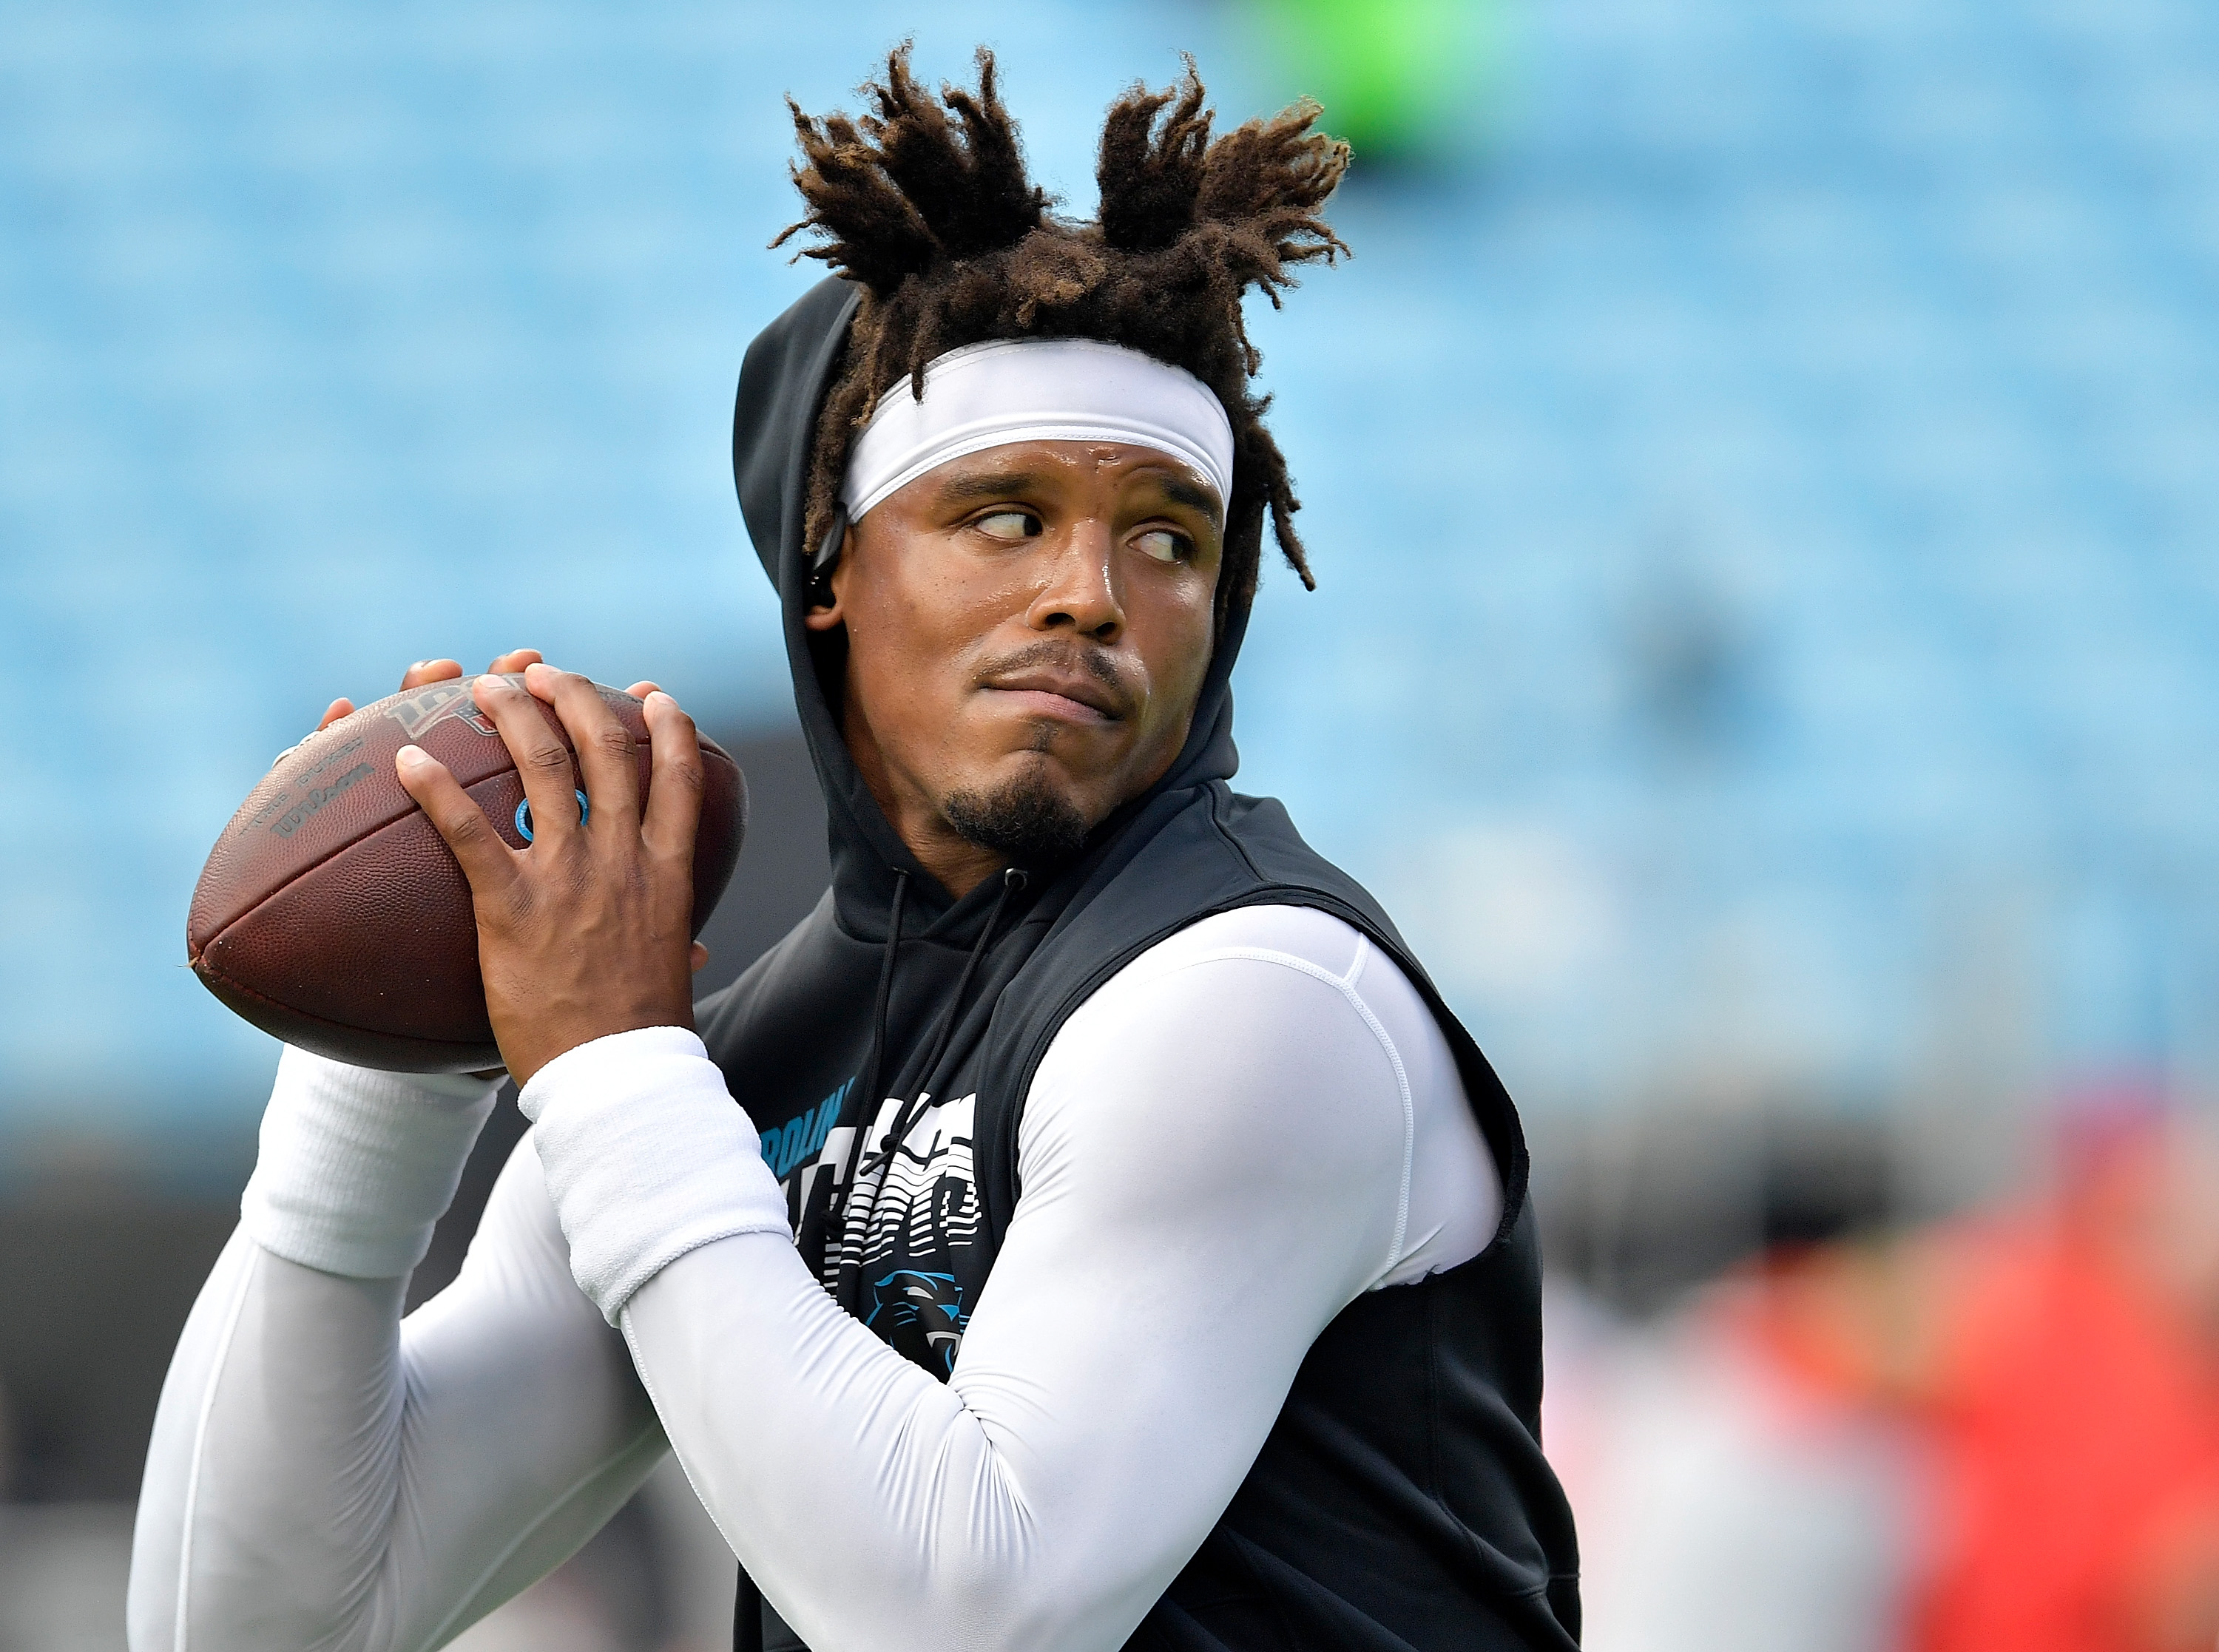 Cam Newton of the Carolina Panthers against the Tampa Bay Buccaneers during the first quarter of their game at Bank of America Stadium on September 12, 2019 in Charlotte, North Carolina.